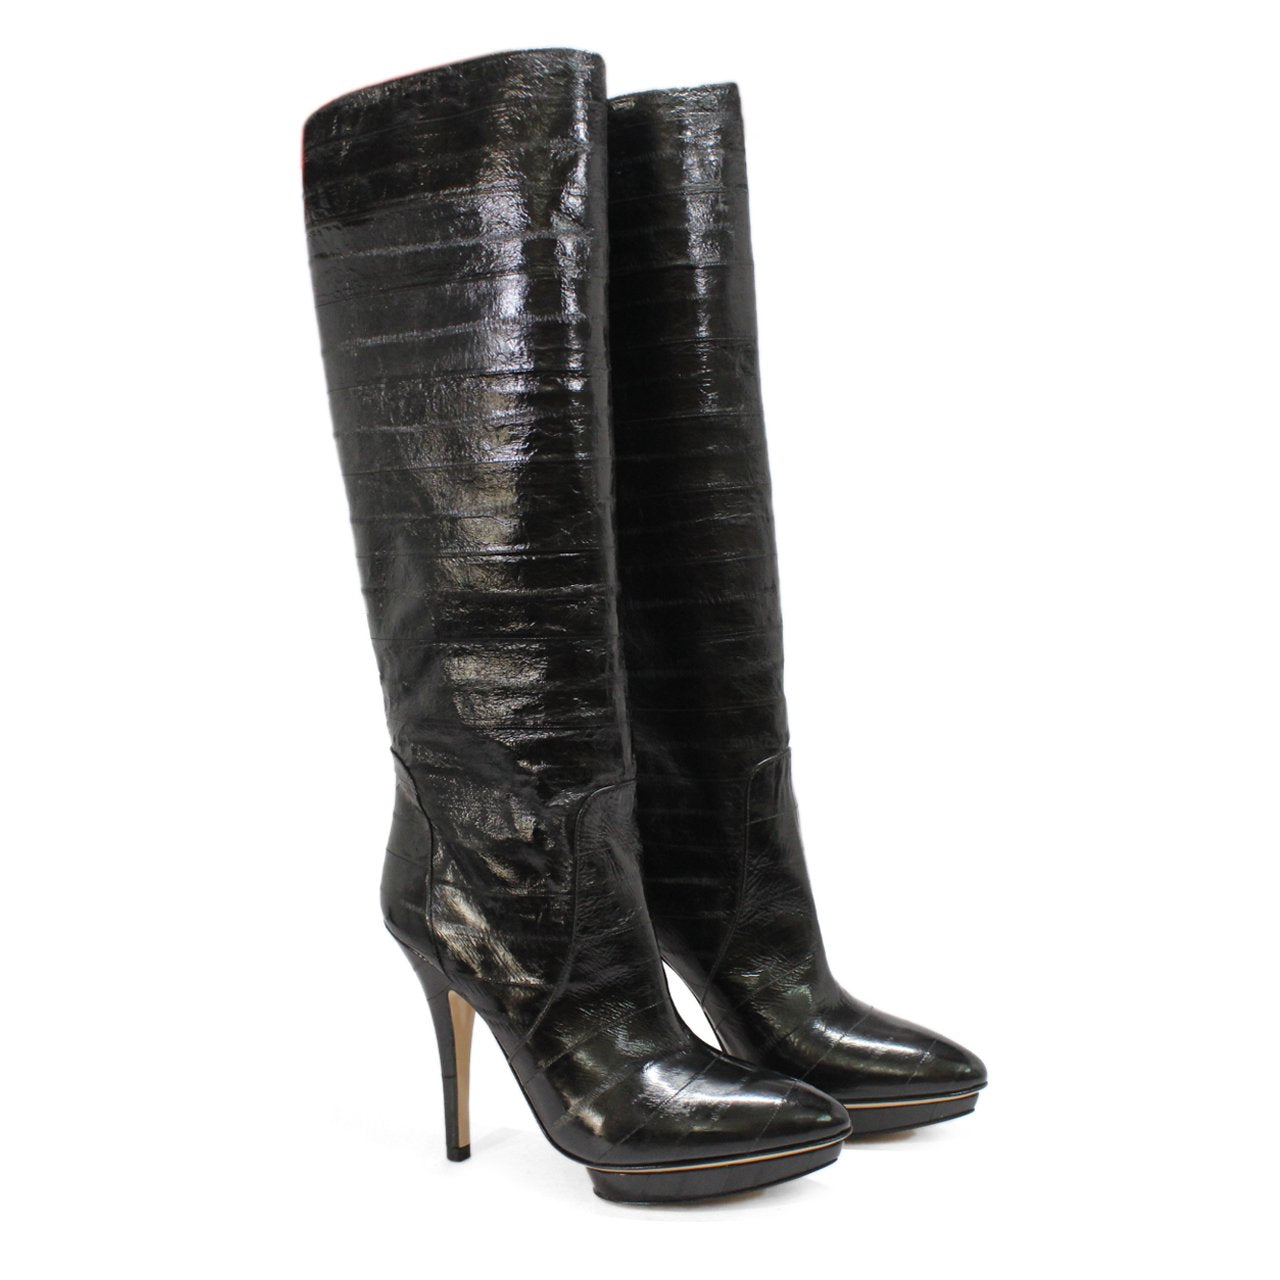 Bally Suana Women's Knee-High Platform Stiletto Heel Boots